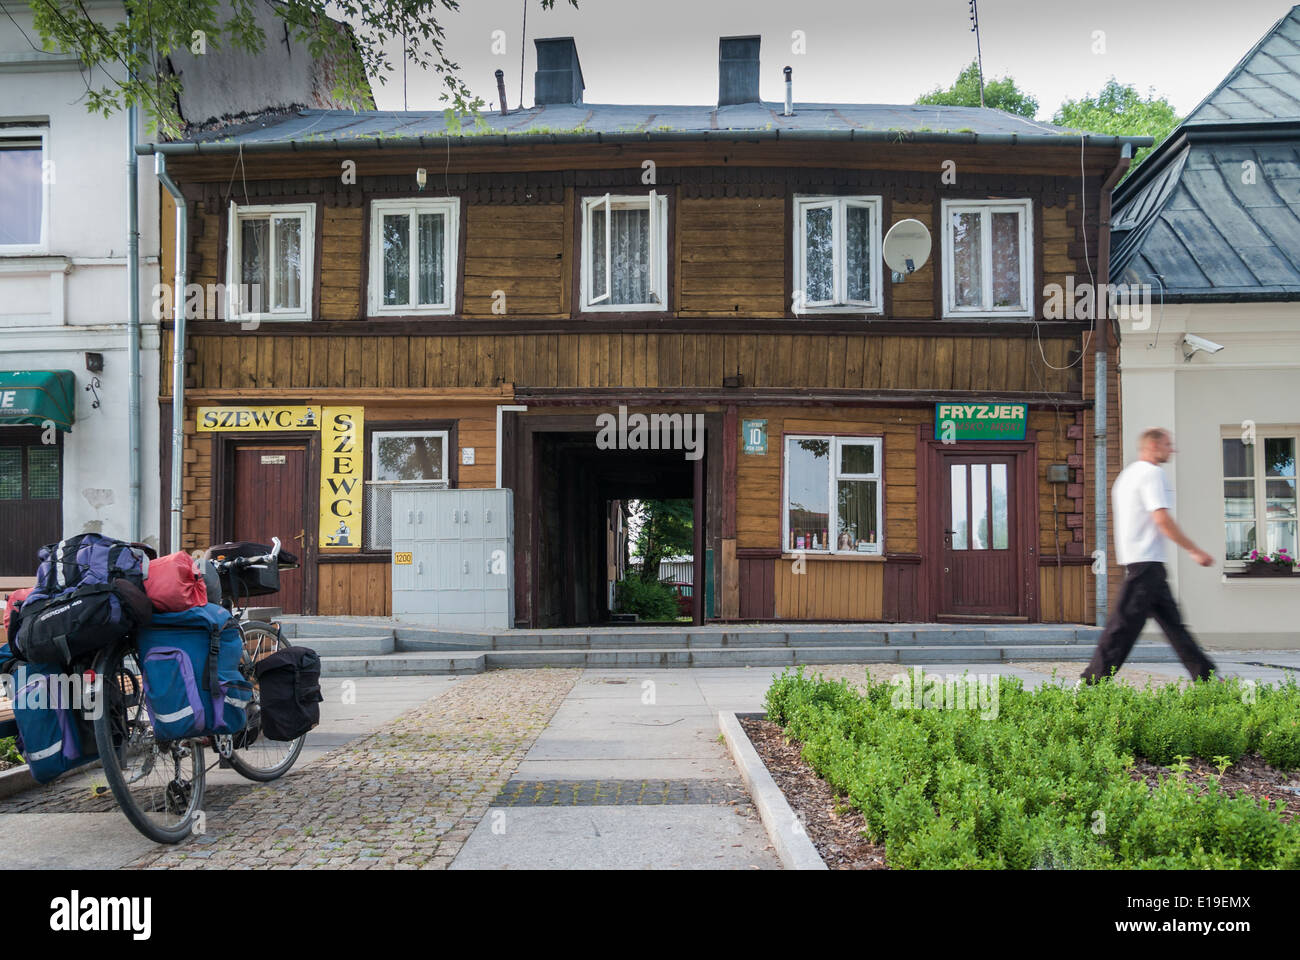 Old Wooden House at Market Square, Węgrów, central-eastern Poland - Stock Image